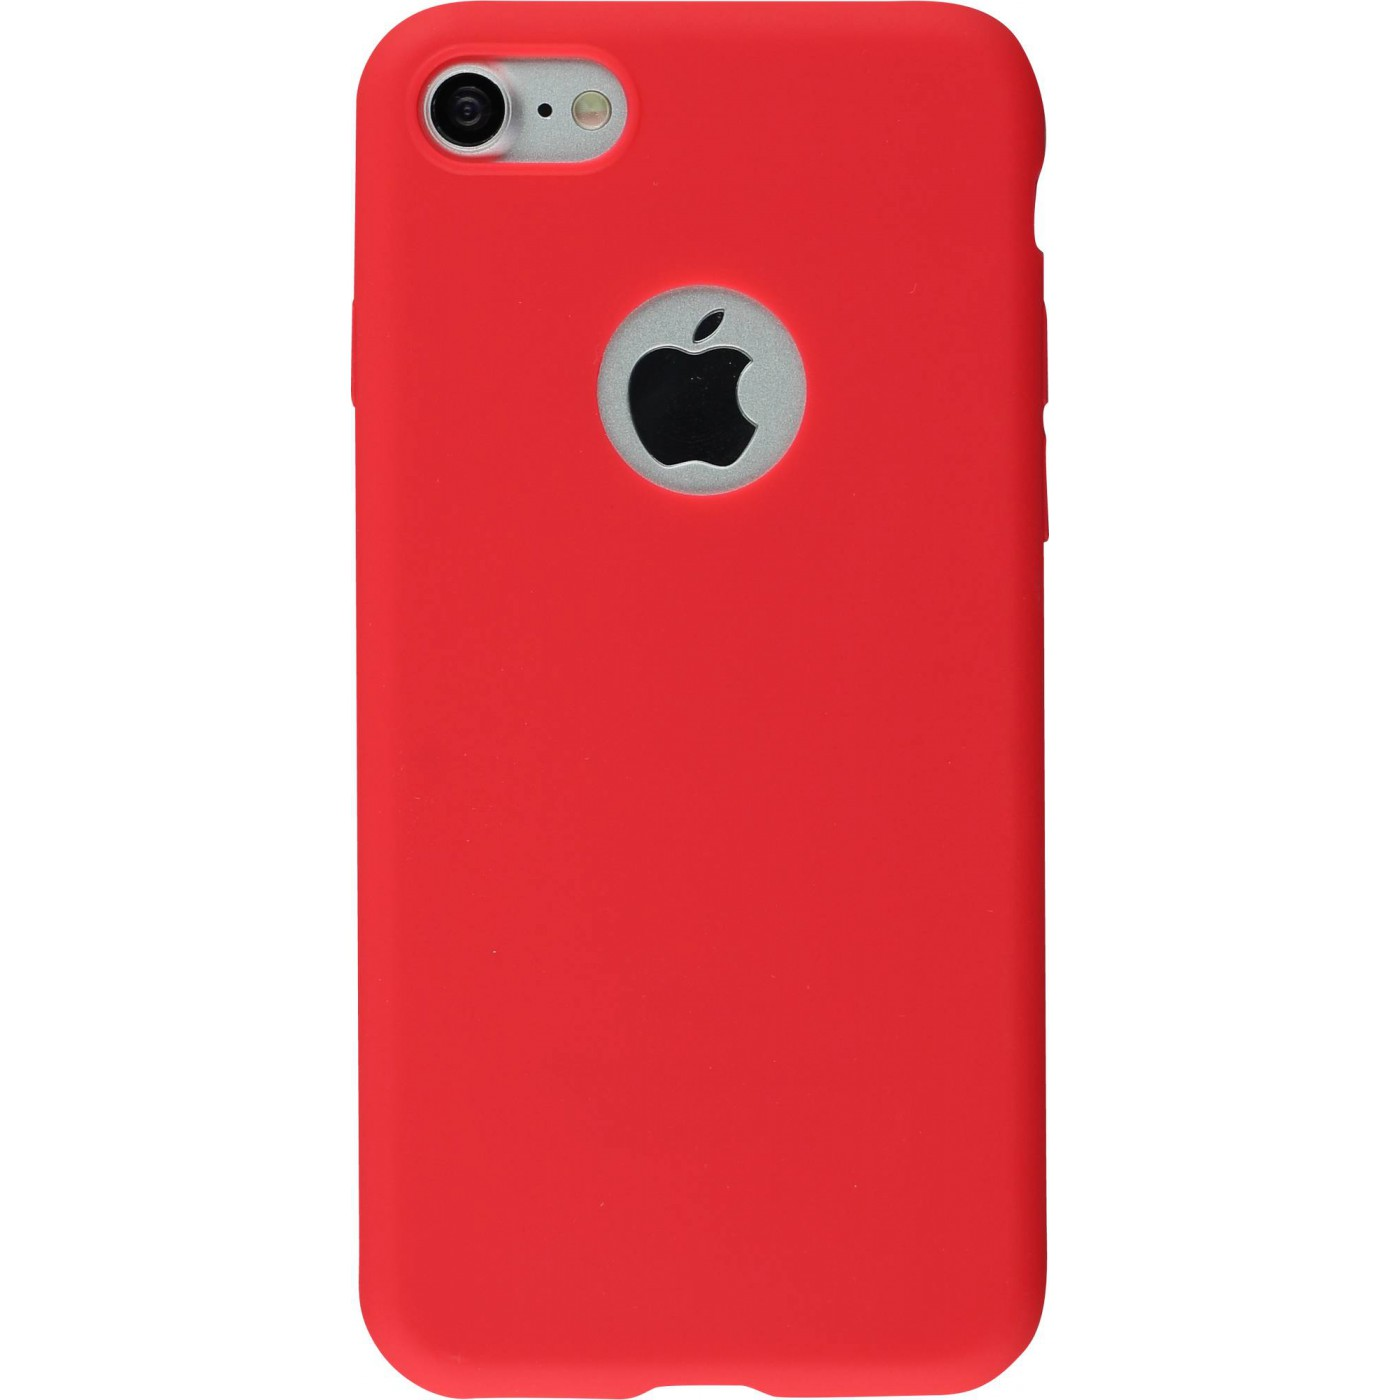 Coque Iphone 7 8 Silicone Mat Rouge